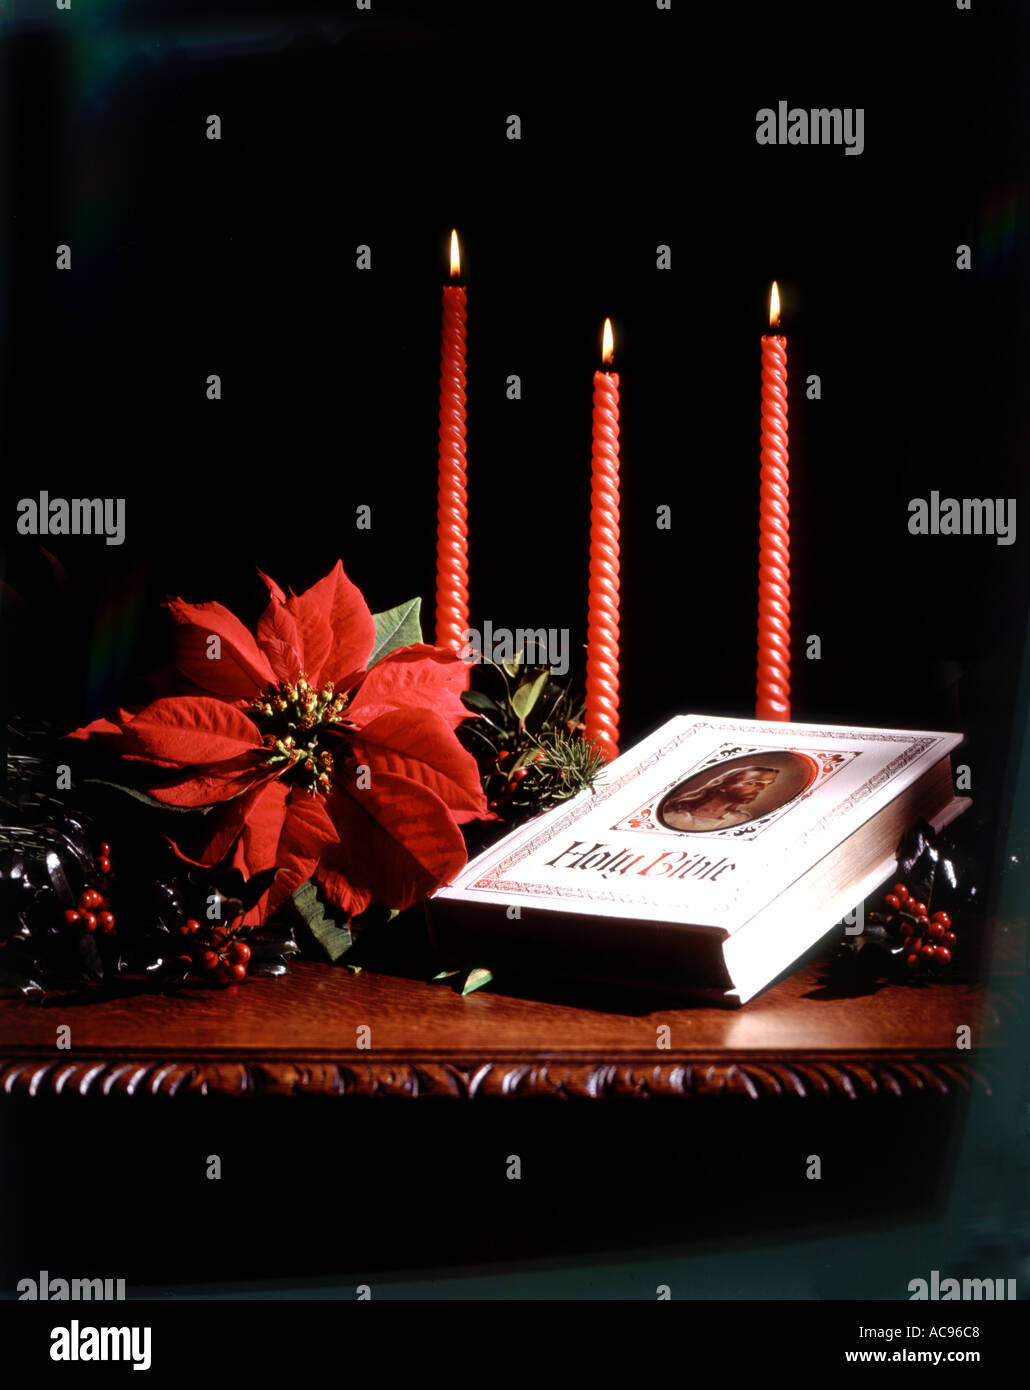 RELIGIOUS CHRISTMAS STILL LIFE WITH BIBLE CANDLES AND